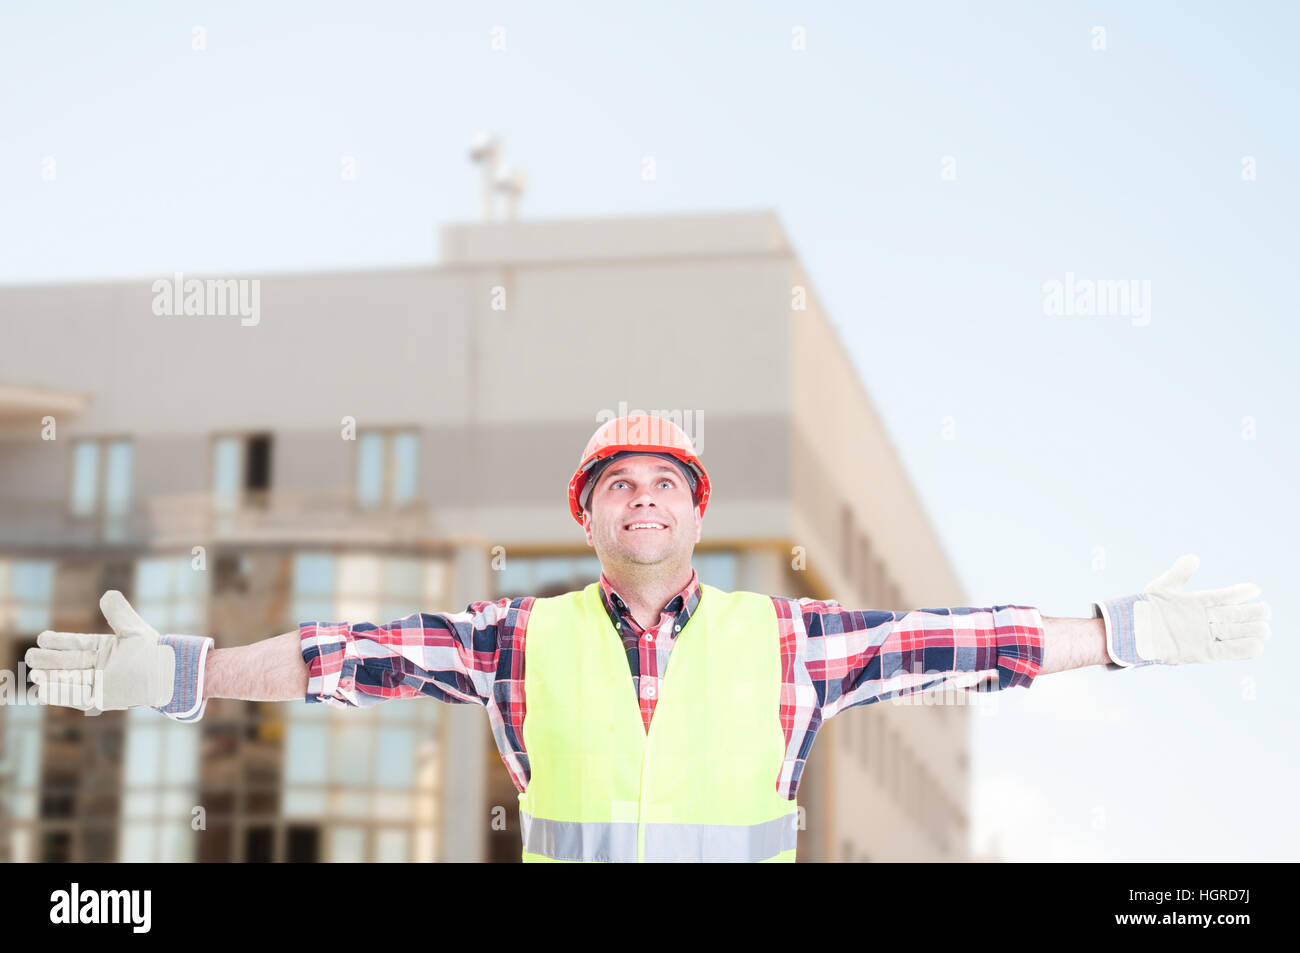 Cheerful constructor standing outside and celebrating victory with copy text area - Stock Image